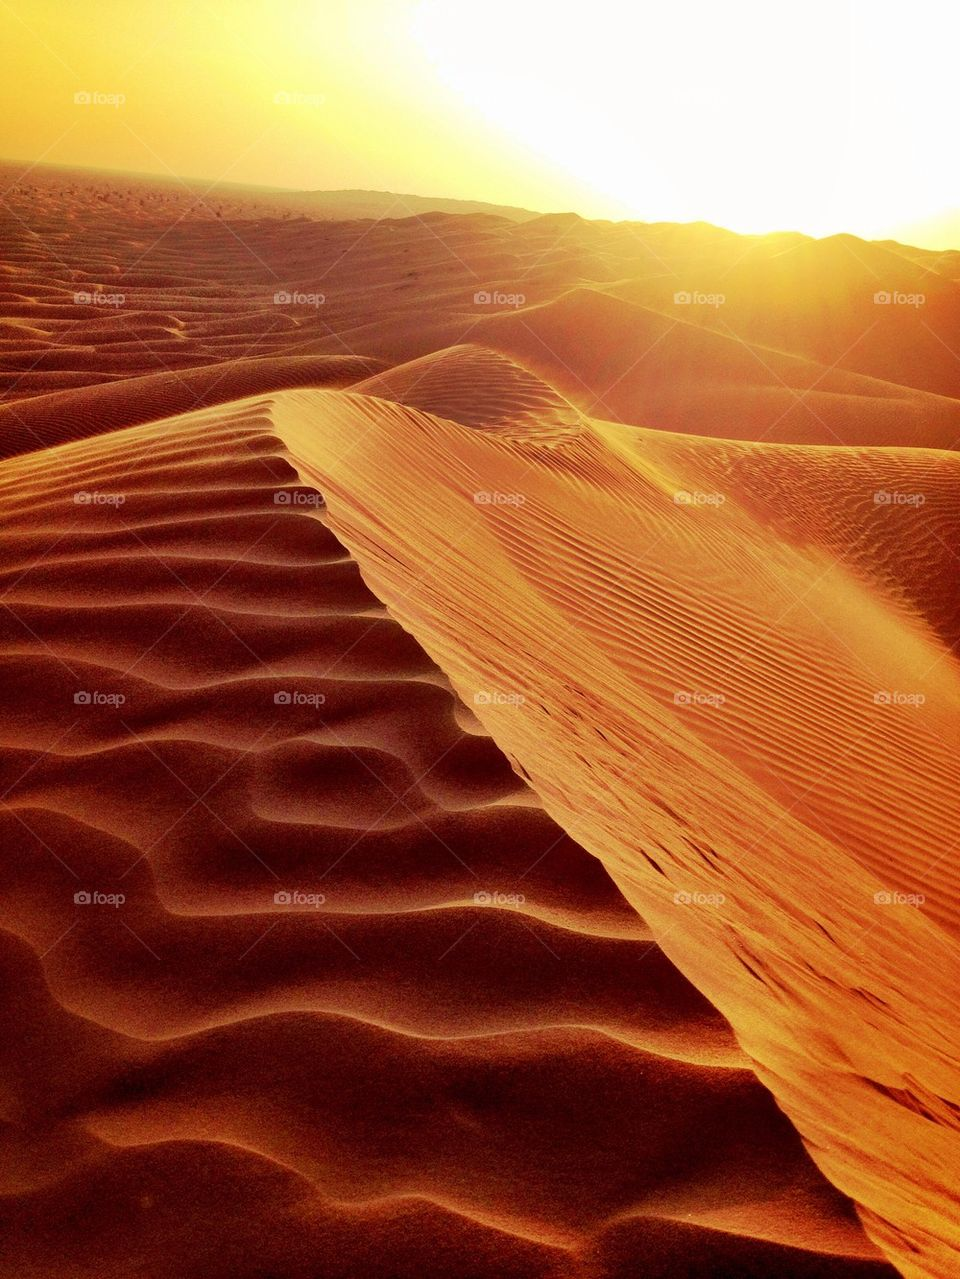 Sunset over sand dunes